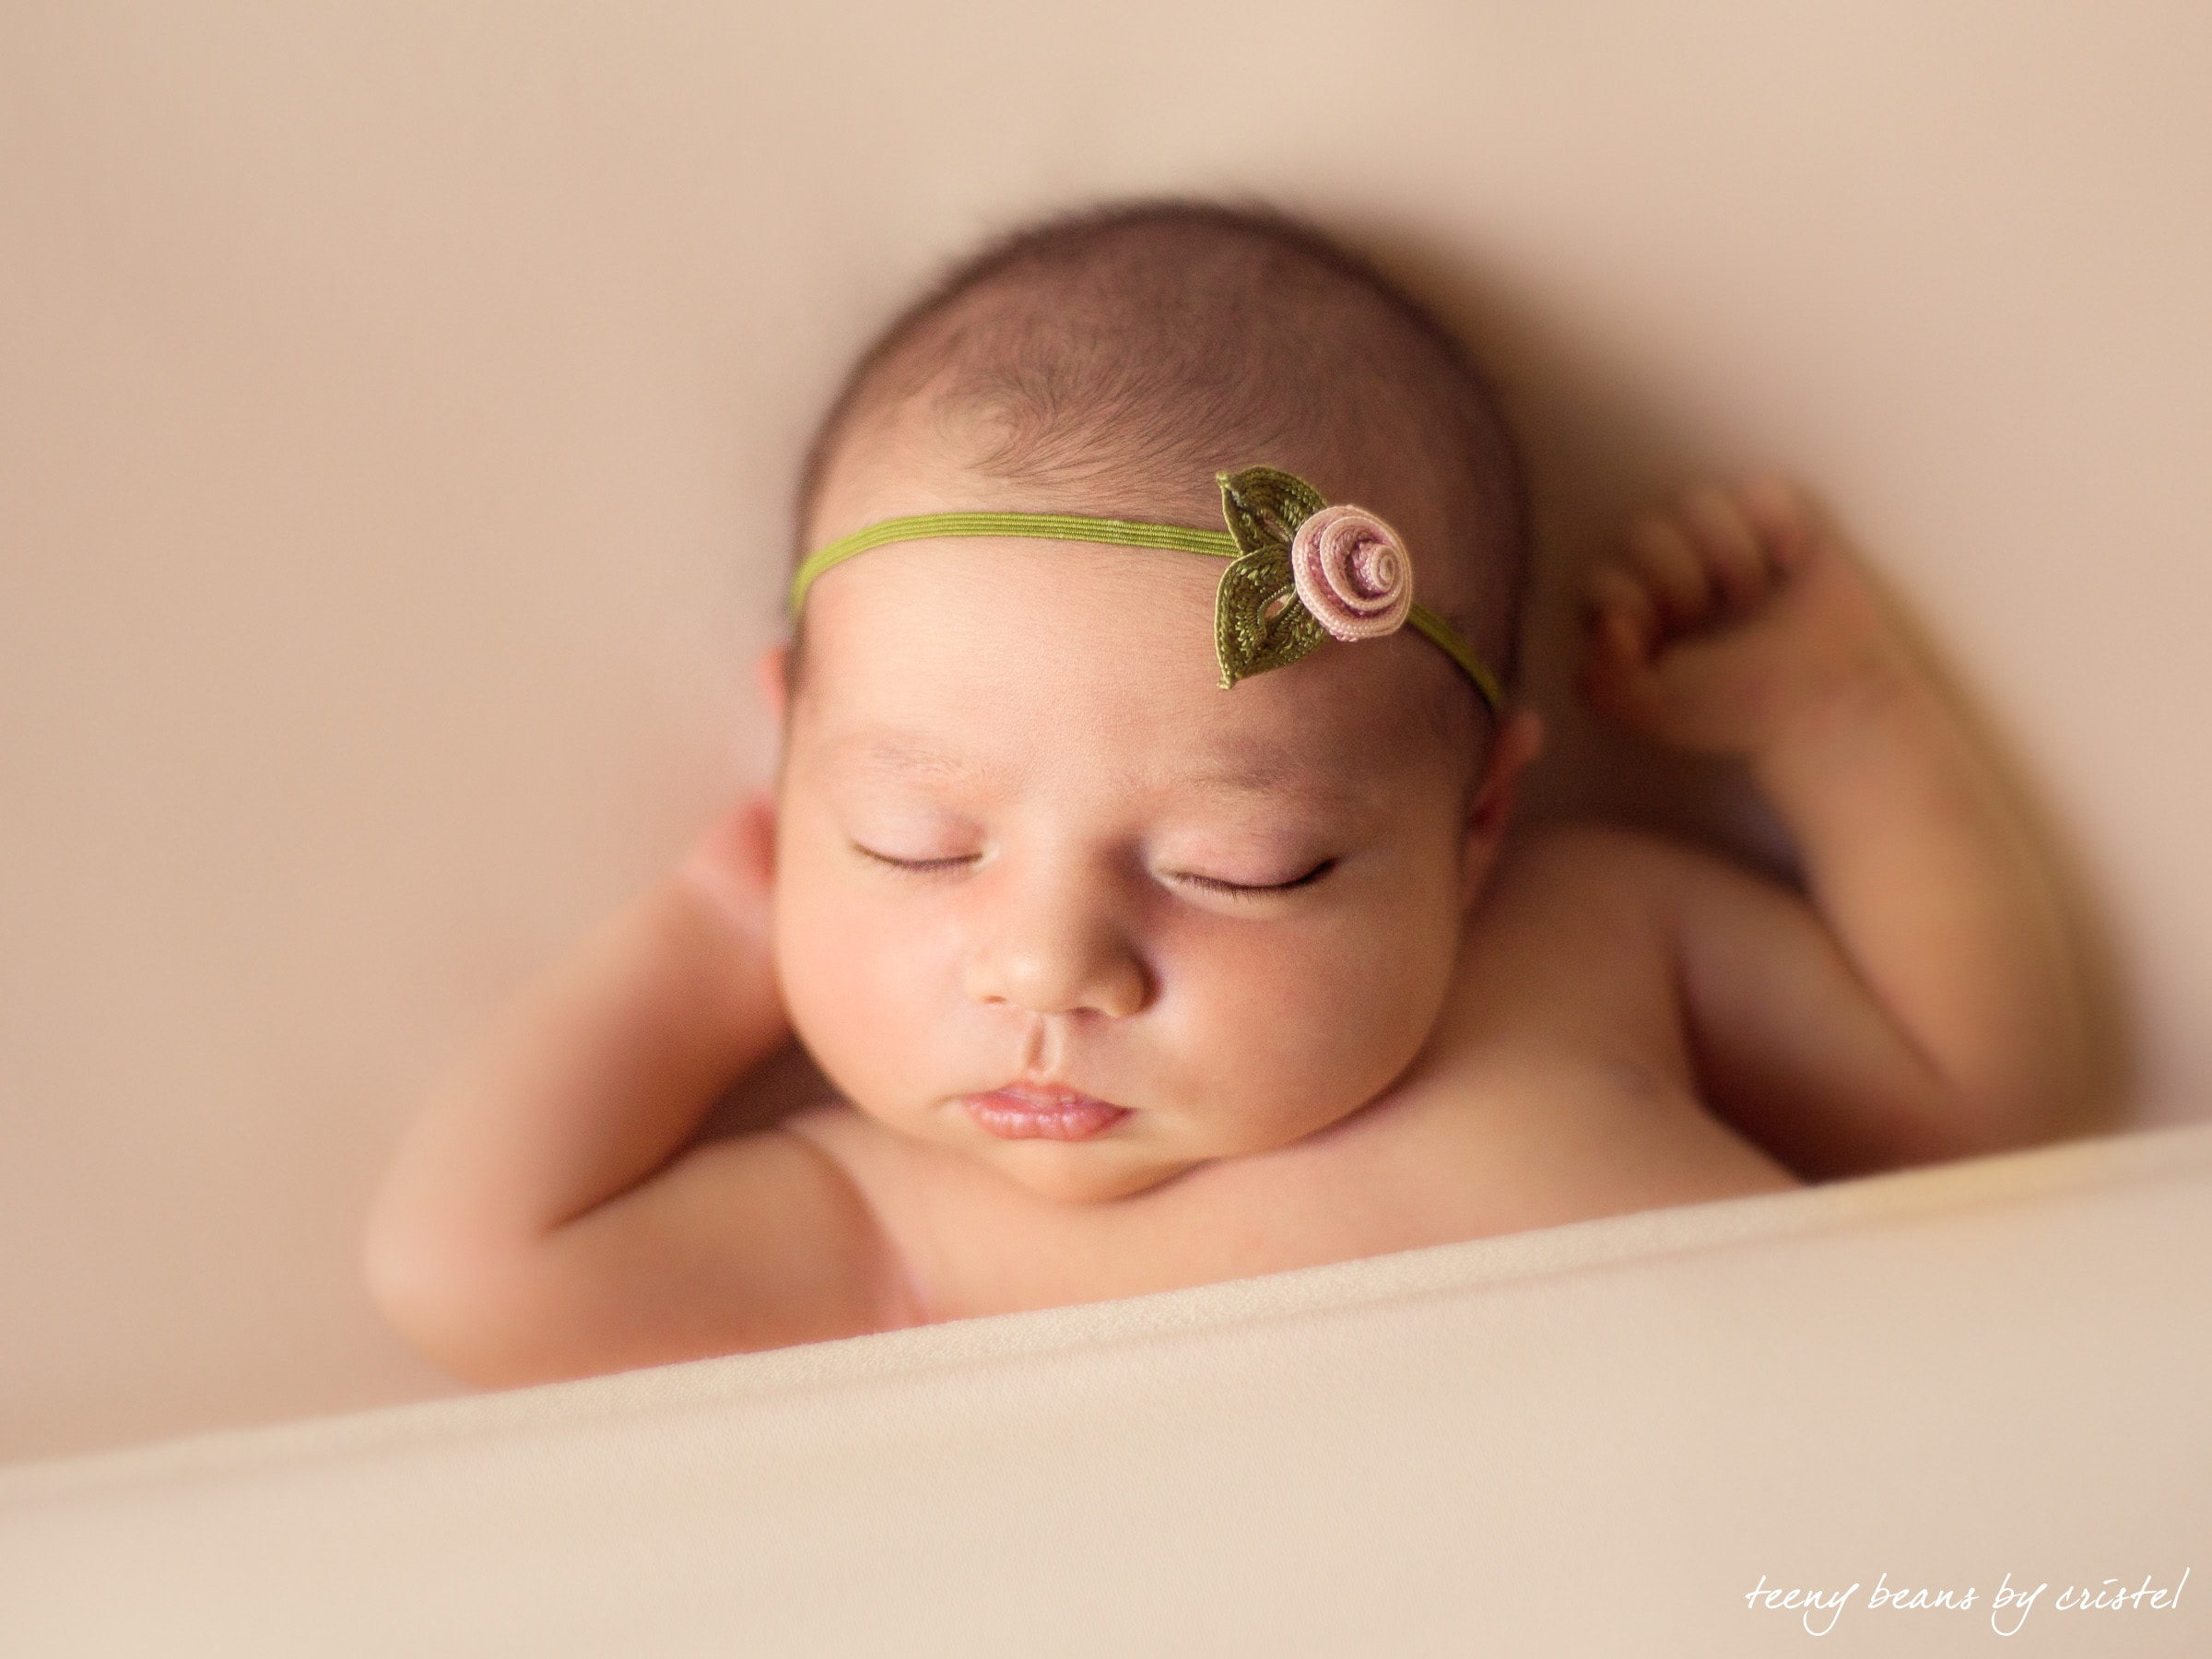 raleigh newborn photographer - baby sleeping flower color